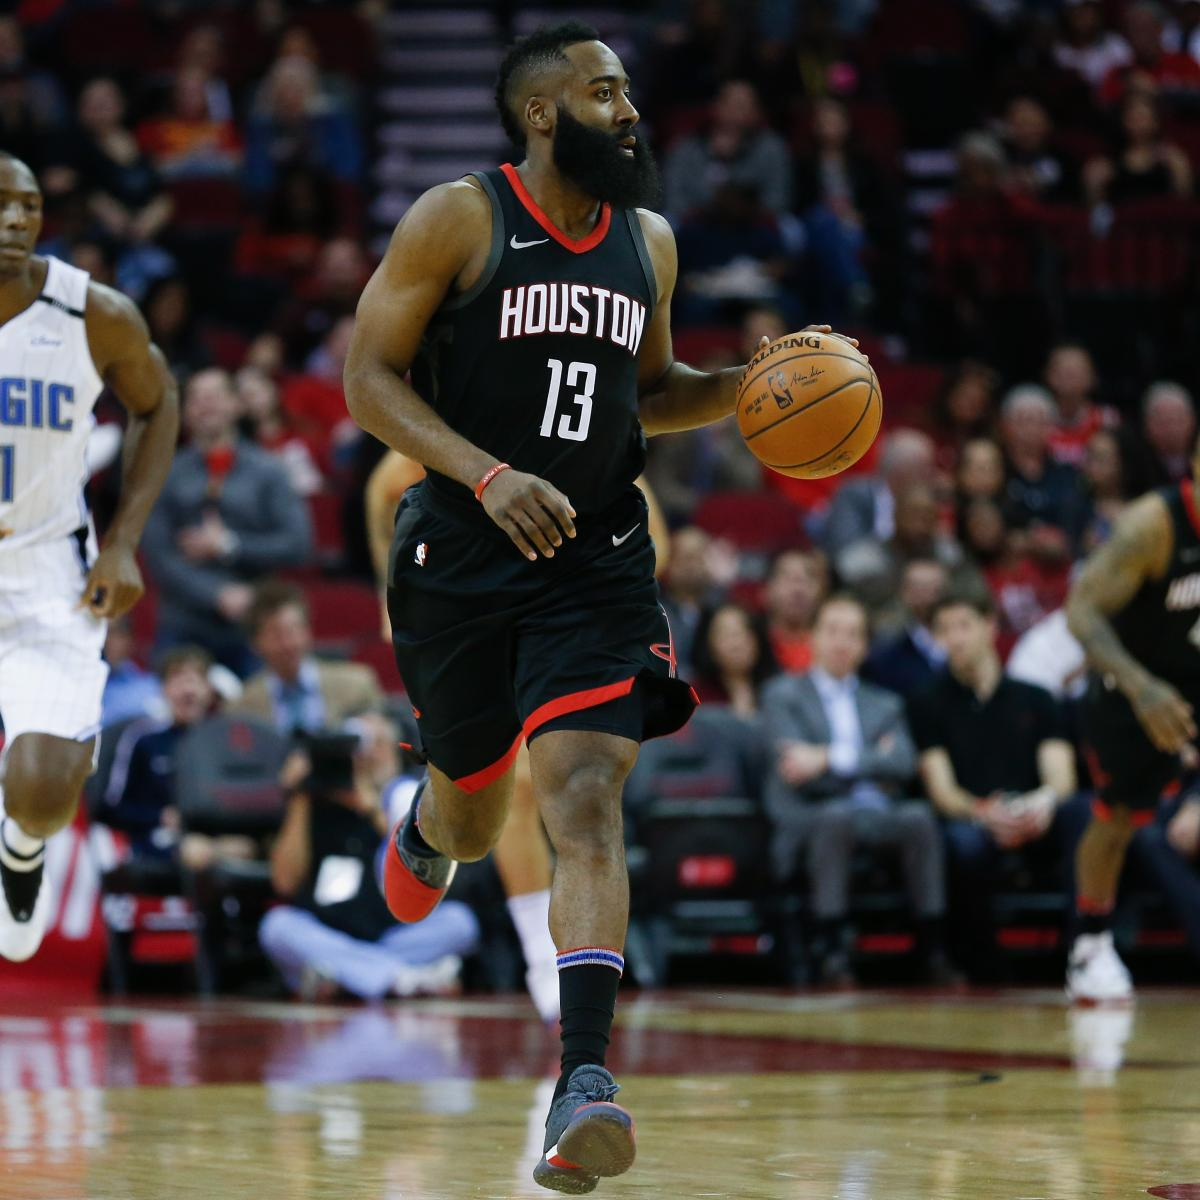 James Harden Nba Records: Twitter Explodes As James Harden Records 1st-Ever 60-Point